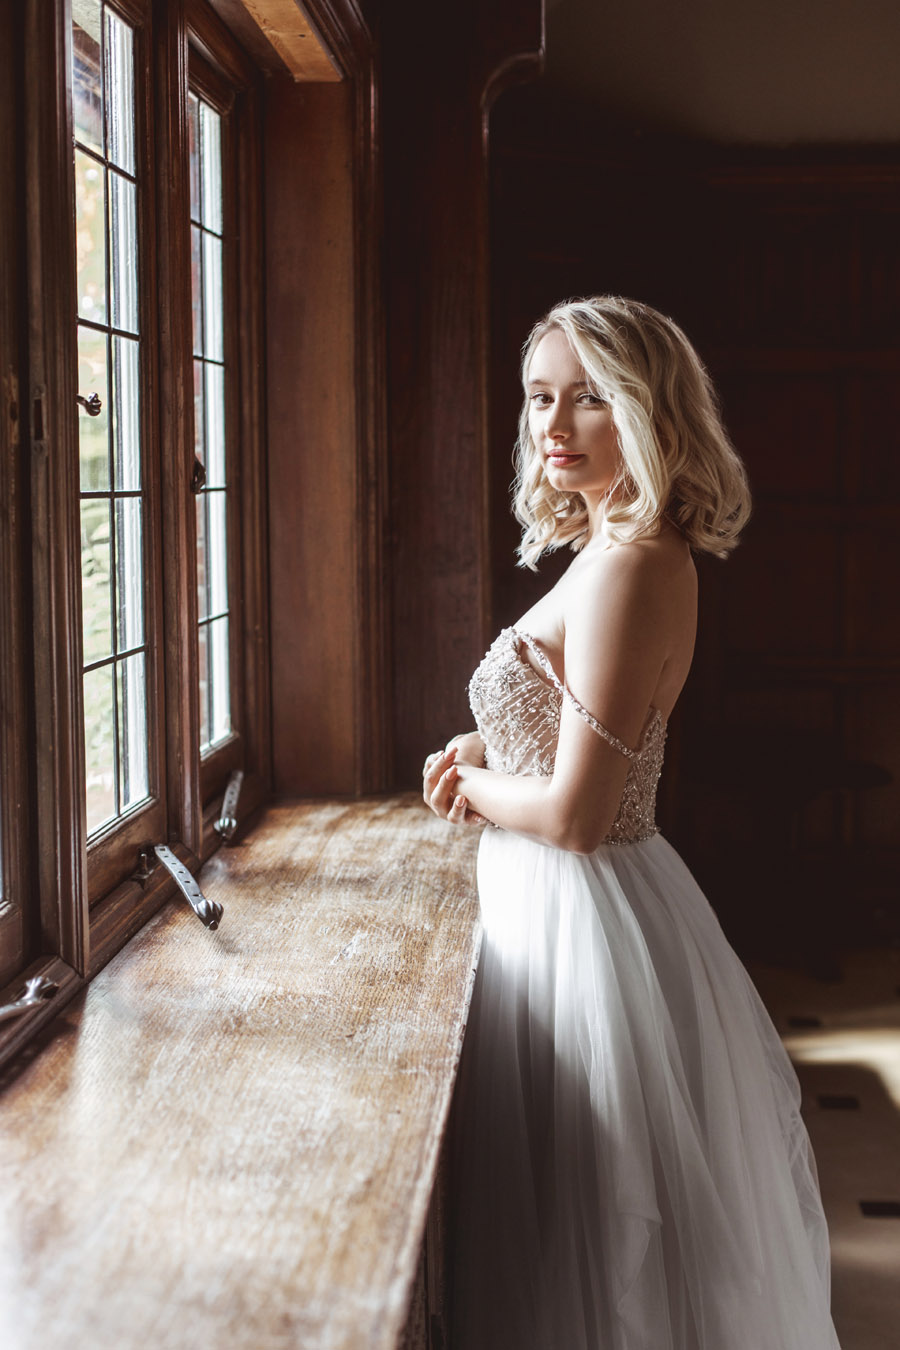 Ye Olde Bell Coaching Inn for a faded beauty wedding style edit with Masha Unwerth (6)